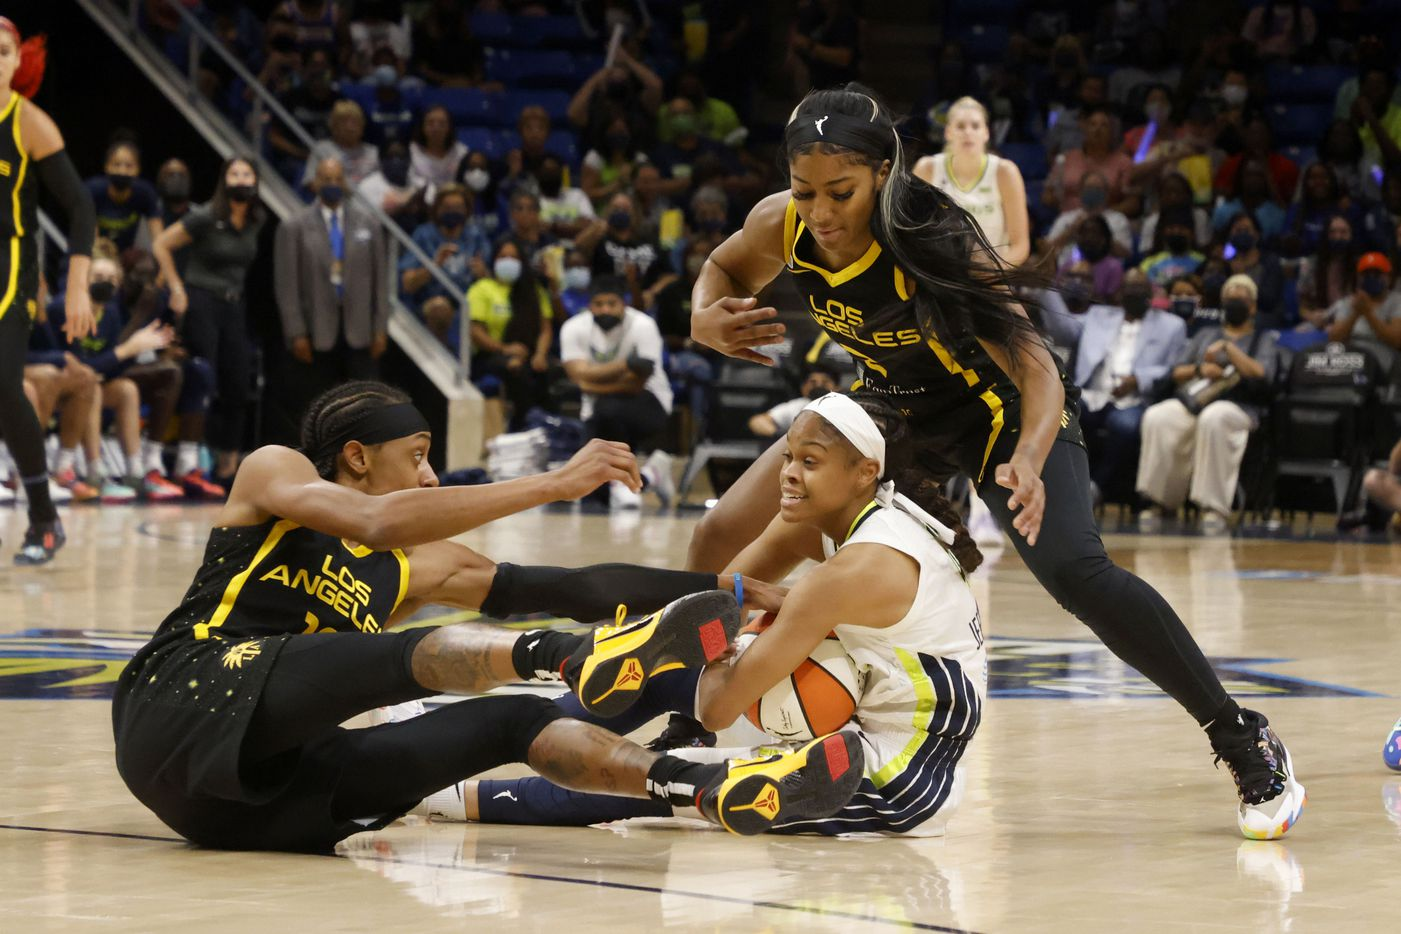 Dallas Wings guard Moriah Jefferson (4) tries to keep the ball away from Los Angeles Sparks guard Brittney Sykes, left, and guard Te'a Cooper, right, during the first half of a WNBA basketball game in Arlington, Texas on Sunday, Sept. 19, 2021. (Michael Ainsworth/Special Contributor)